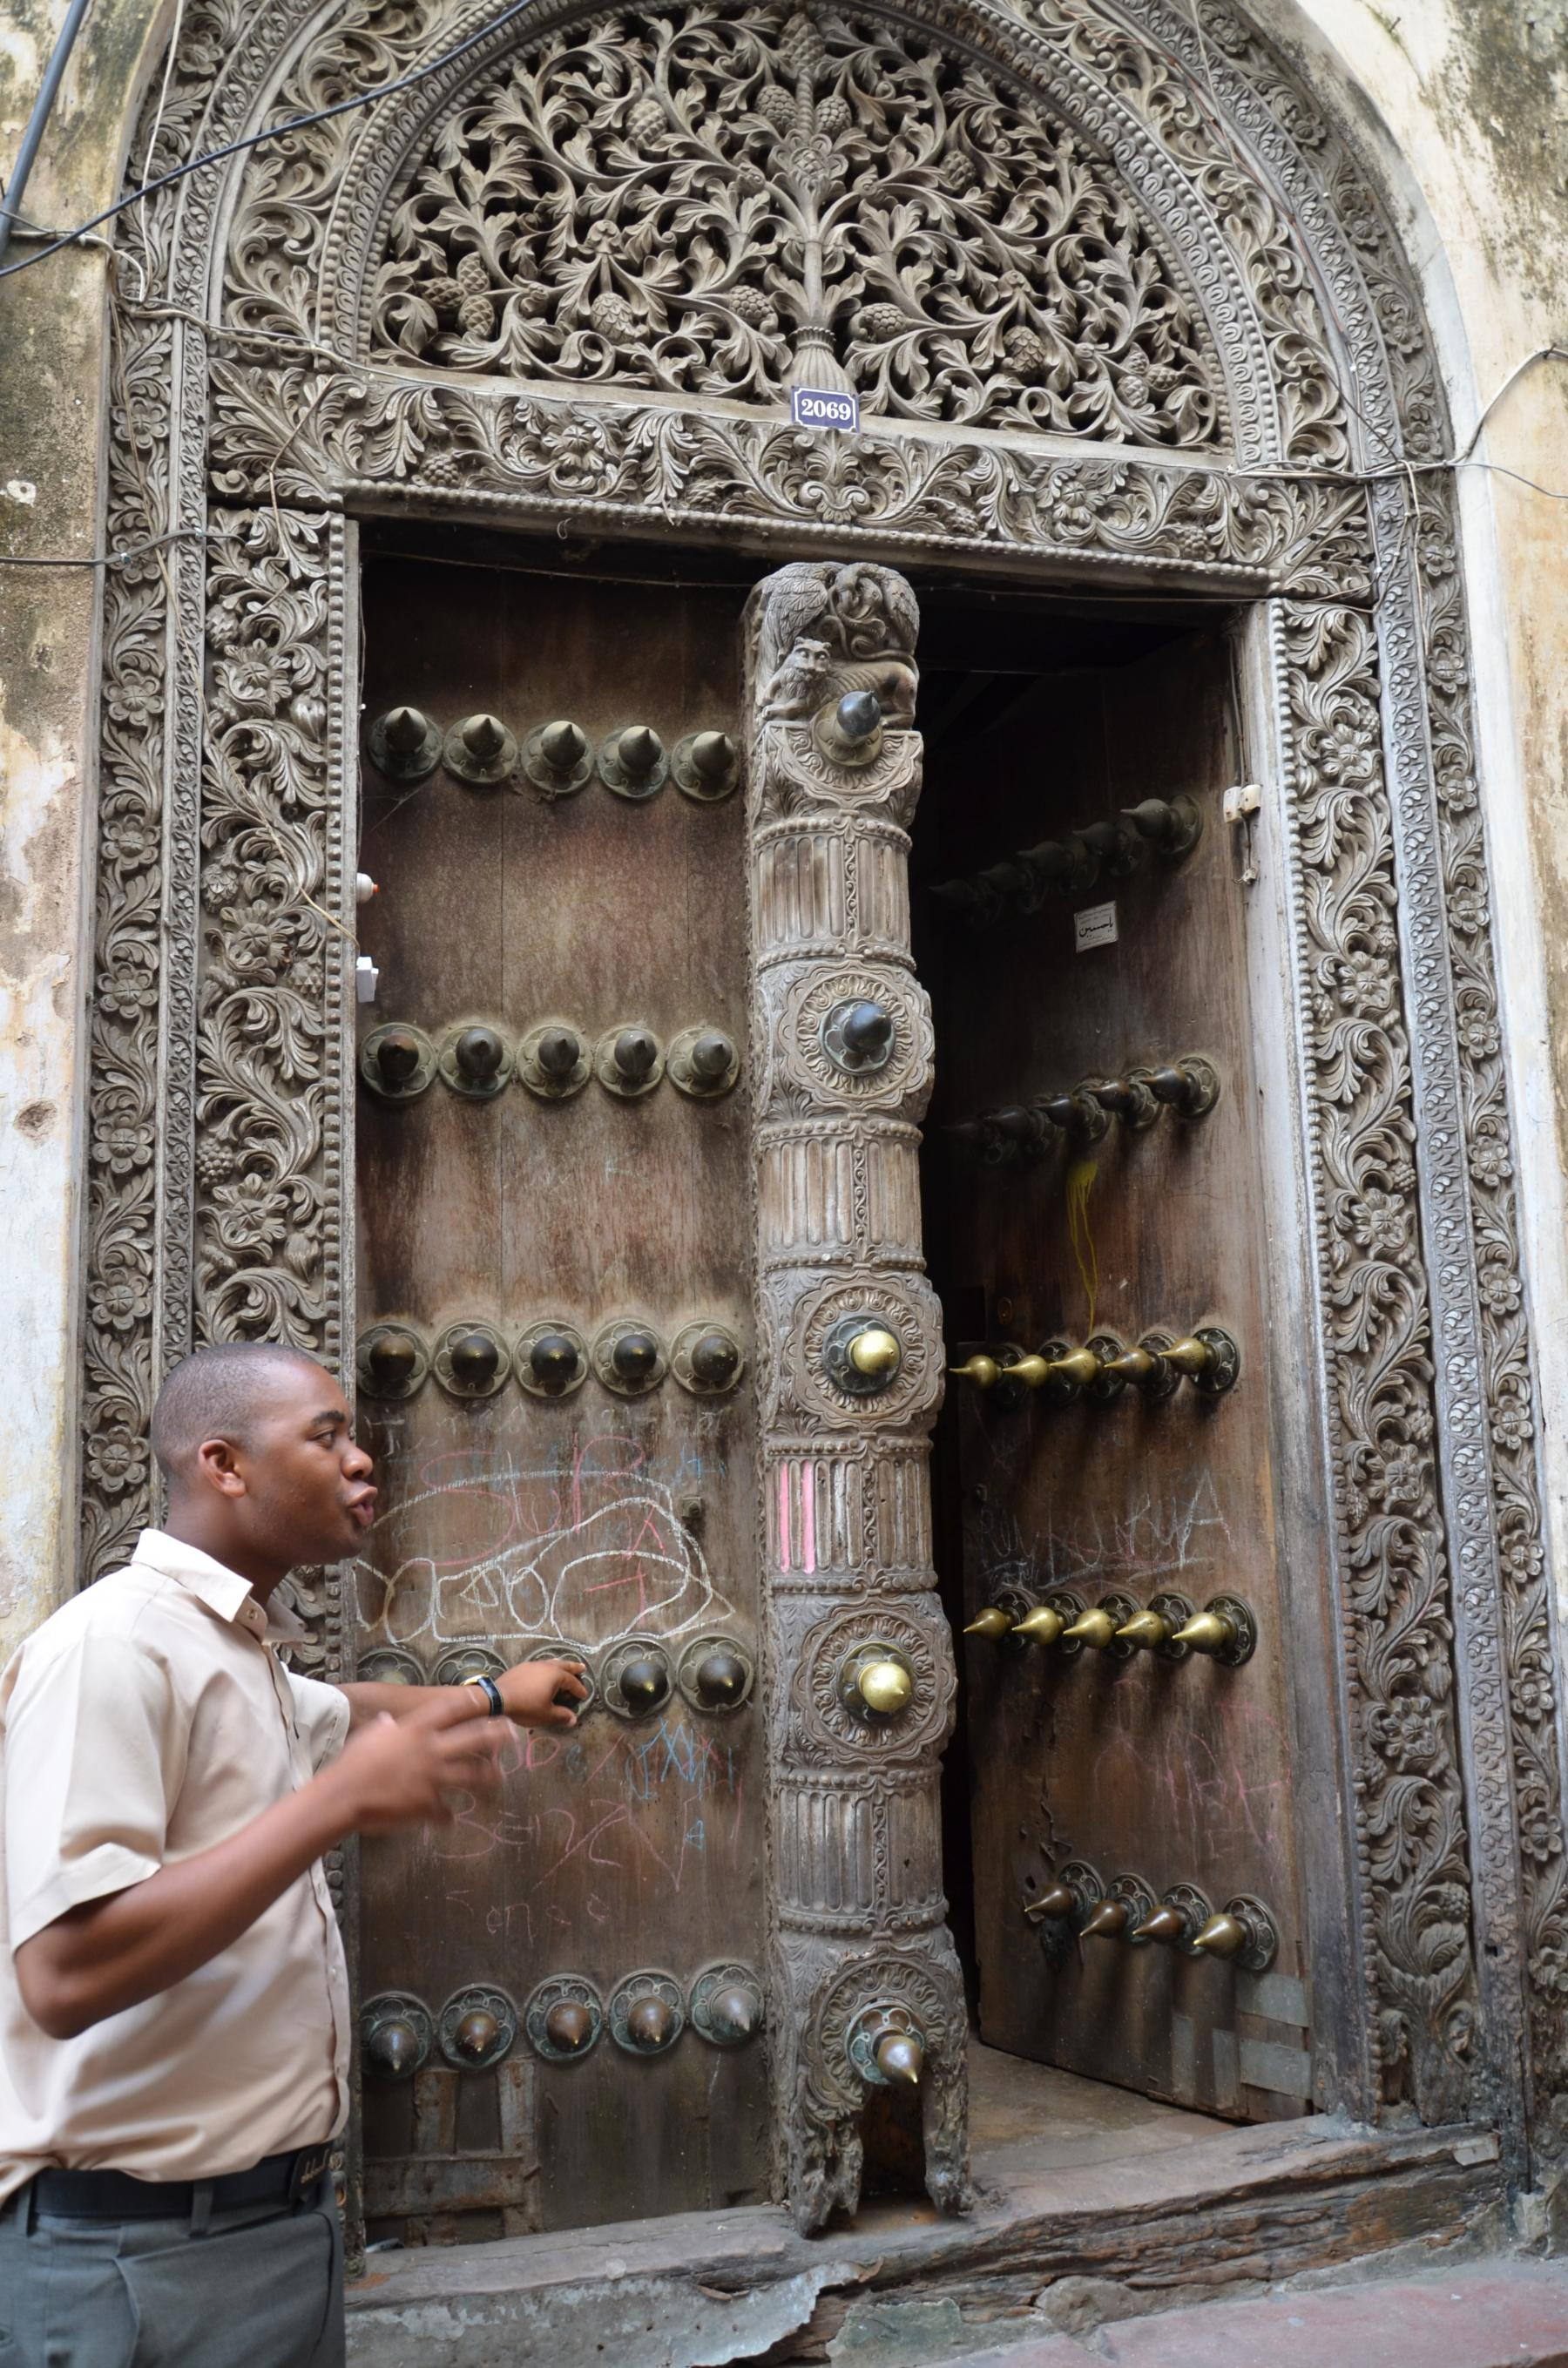 Stone town sights